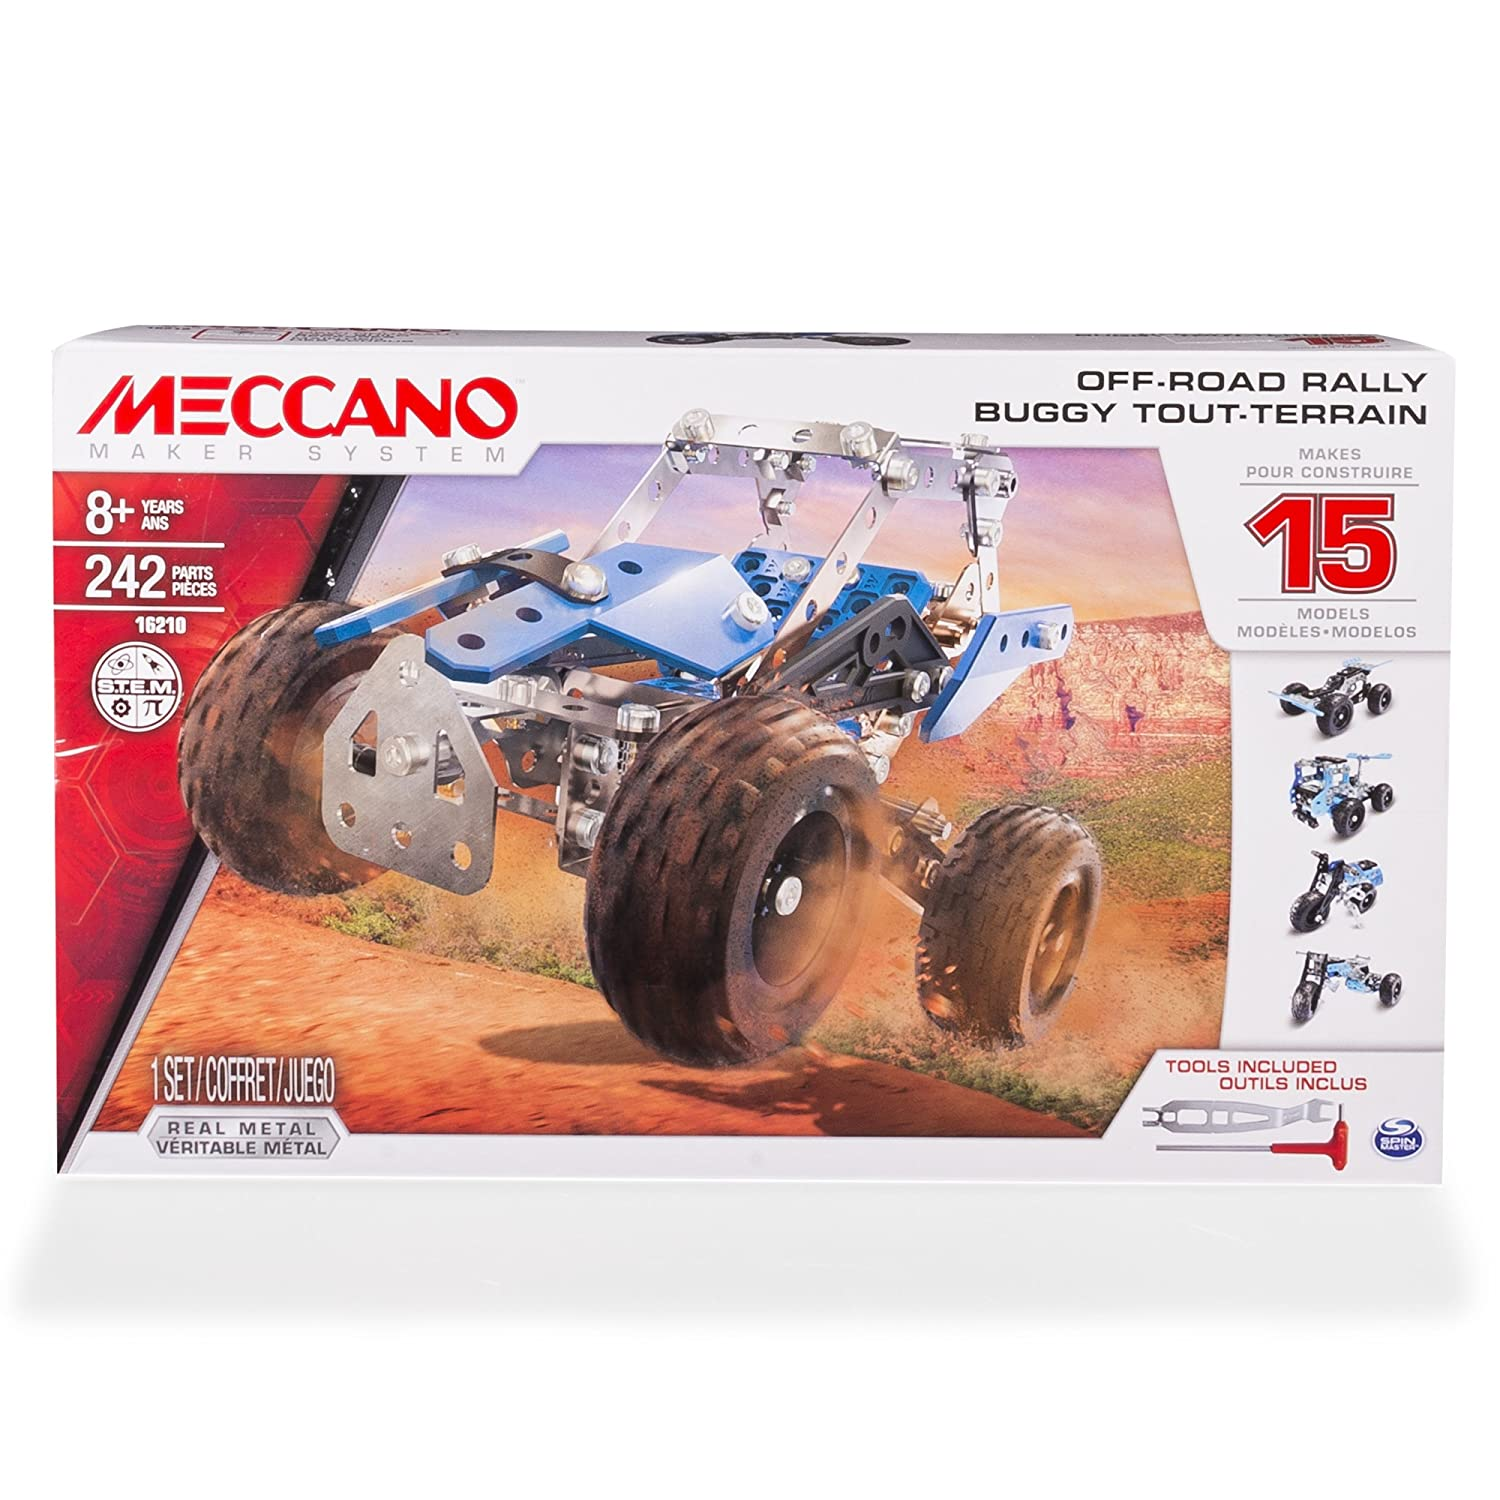 Meccano Multi-Model 15 Set - Side by Side ATV Game: Amazon